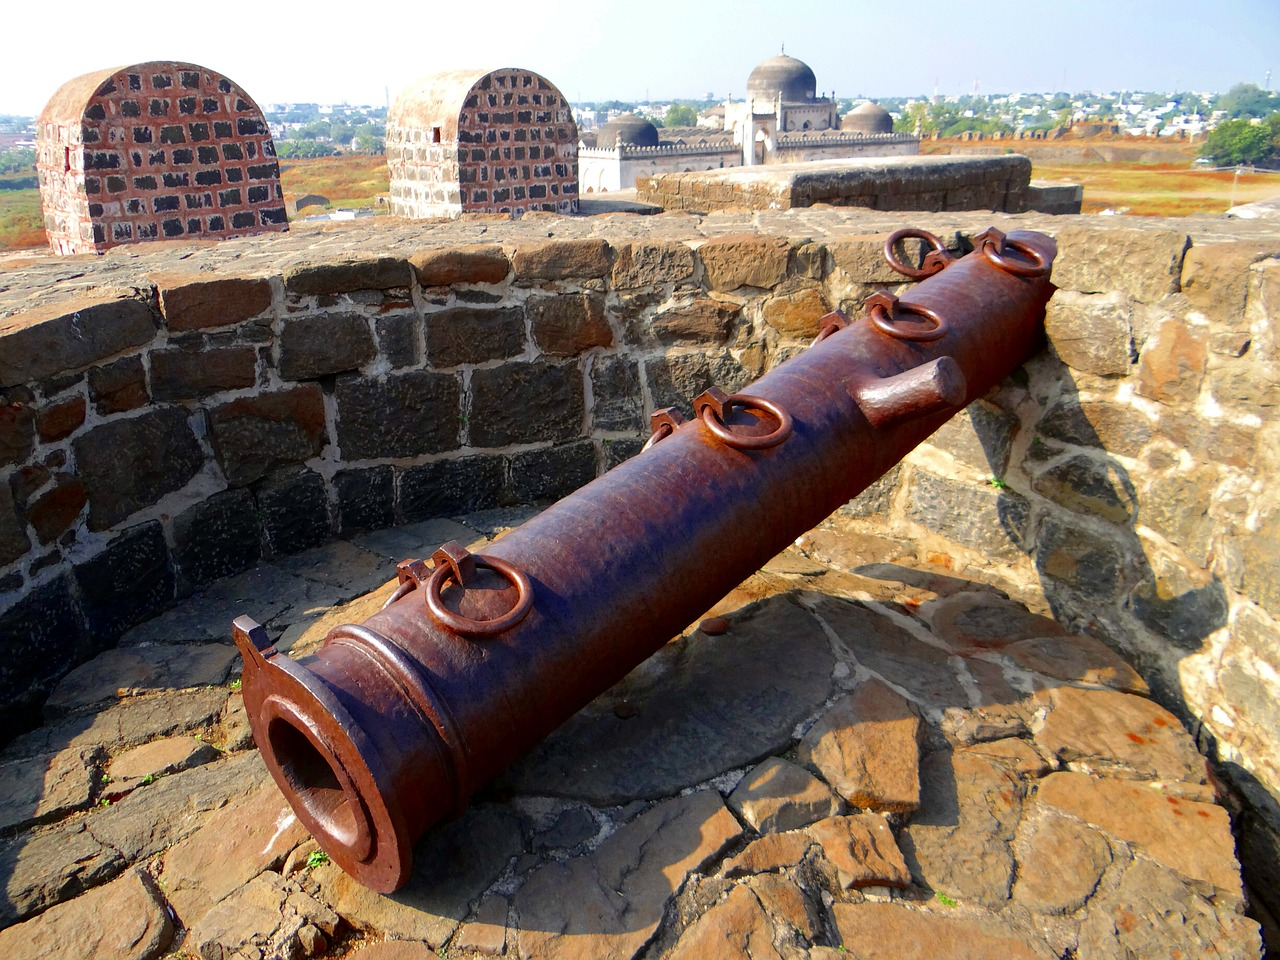 gulbarga fort bahmani dynasty indo-persian free photo